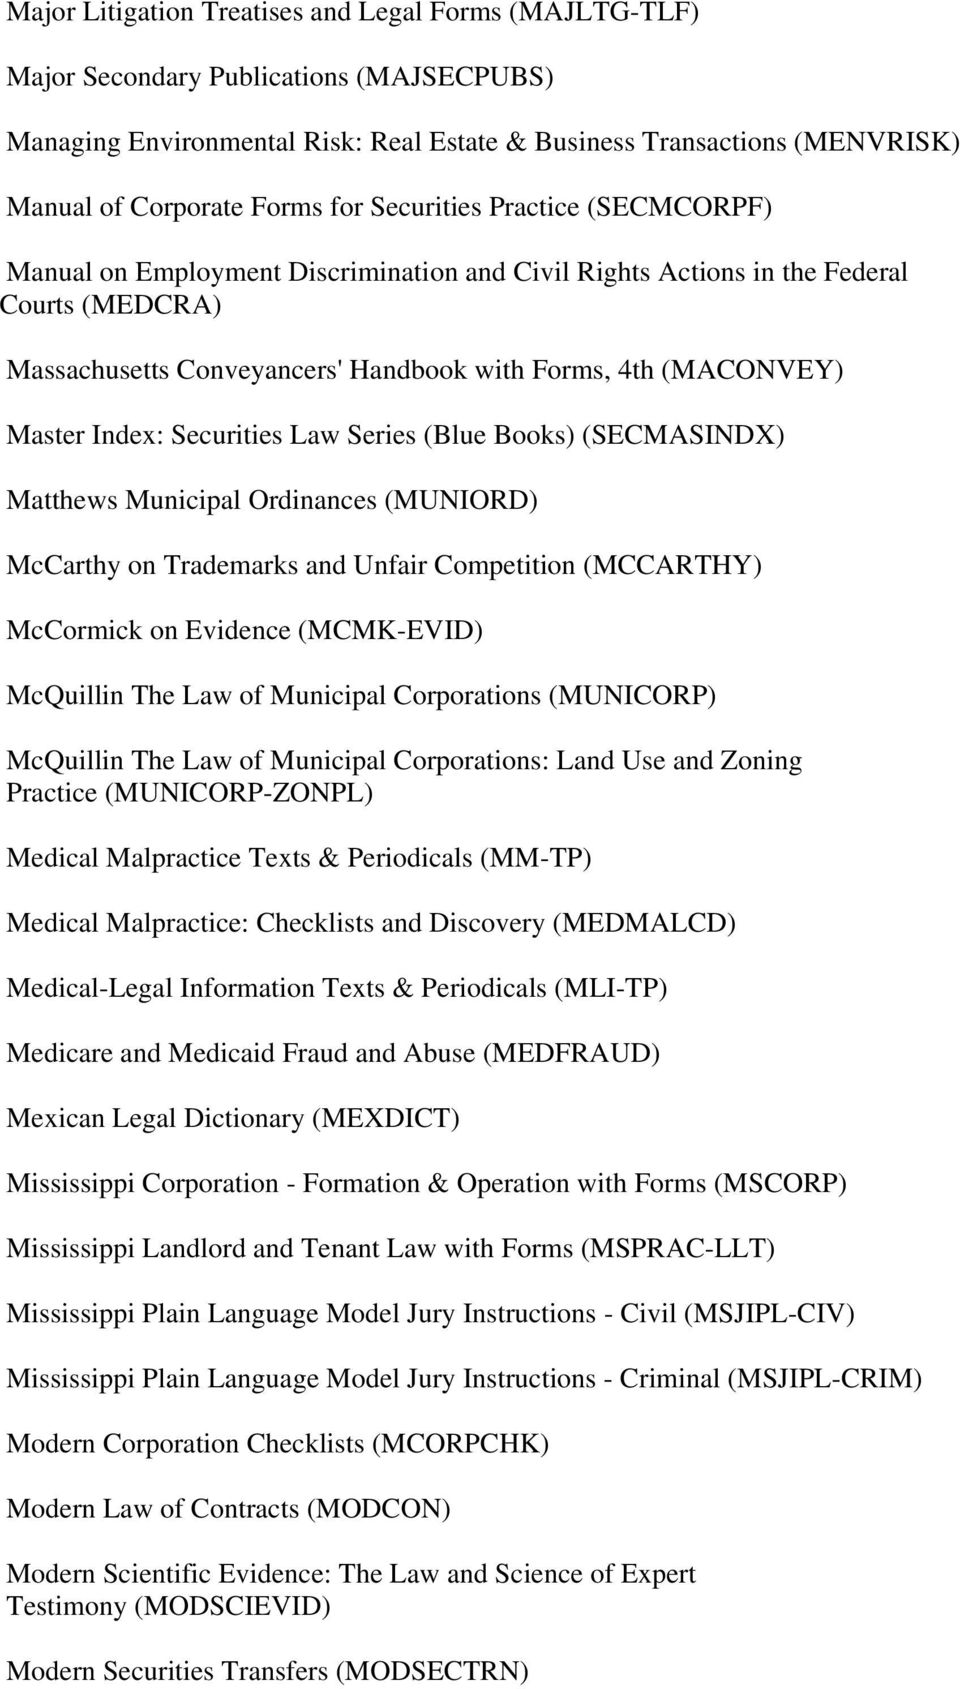 Index: Securities Law Series (Blue Books) (SECMASINDX) Matthews Municipal Ordinances (MUNIORD) McCarthy on Trademarks and Unfair Competition (MCCARTHY) McCormick on Evidence (MCMK-EVID) McQuillin The